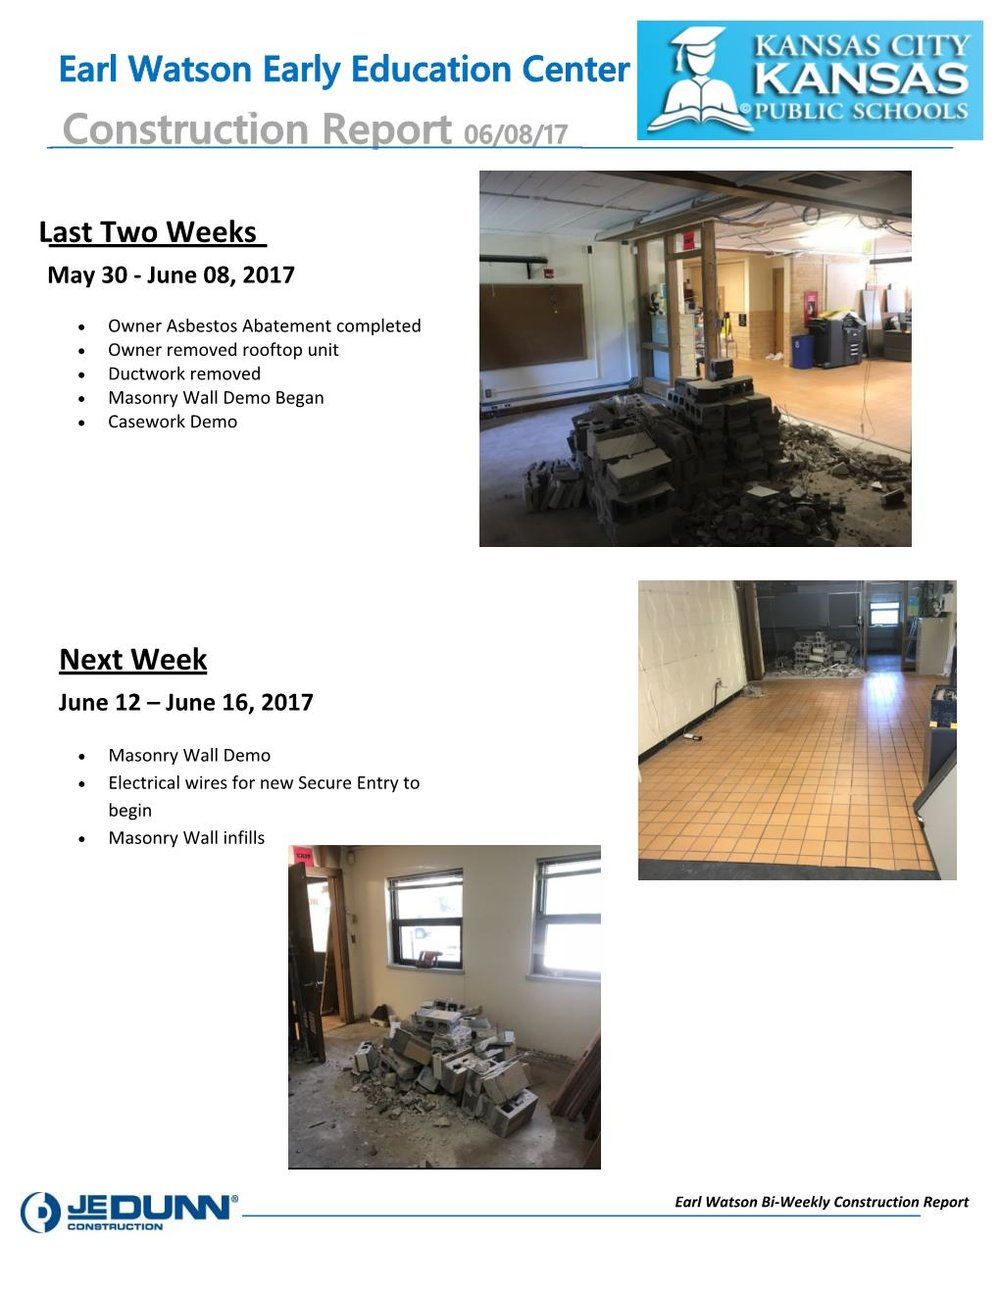 Earl Watson Construction Report 06.08.17.jpg